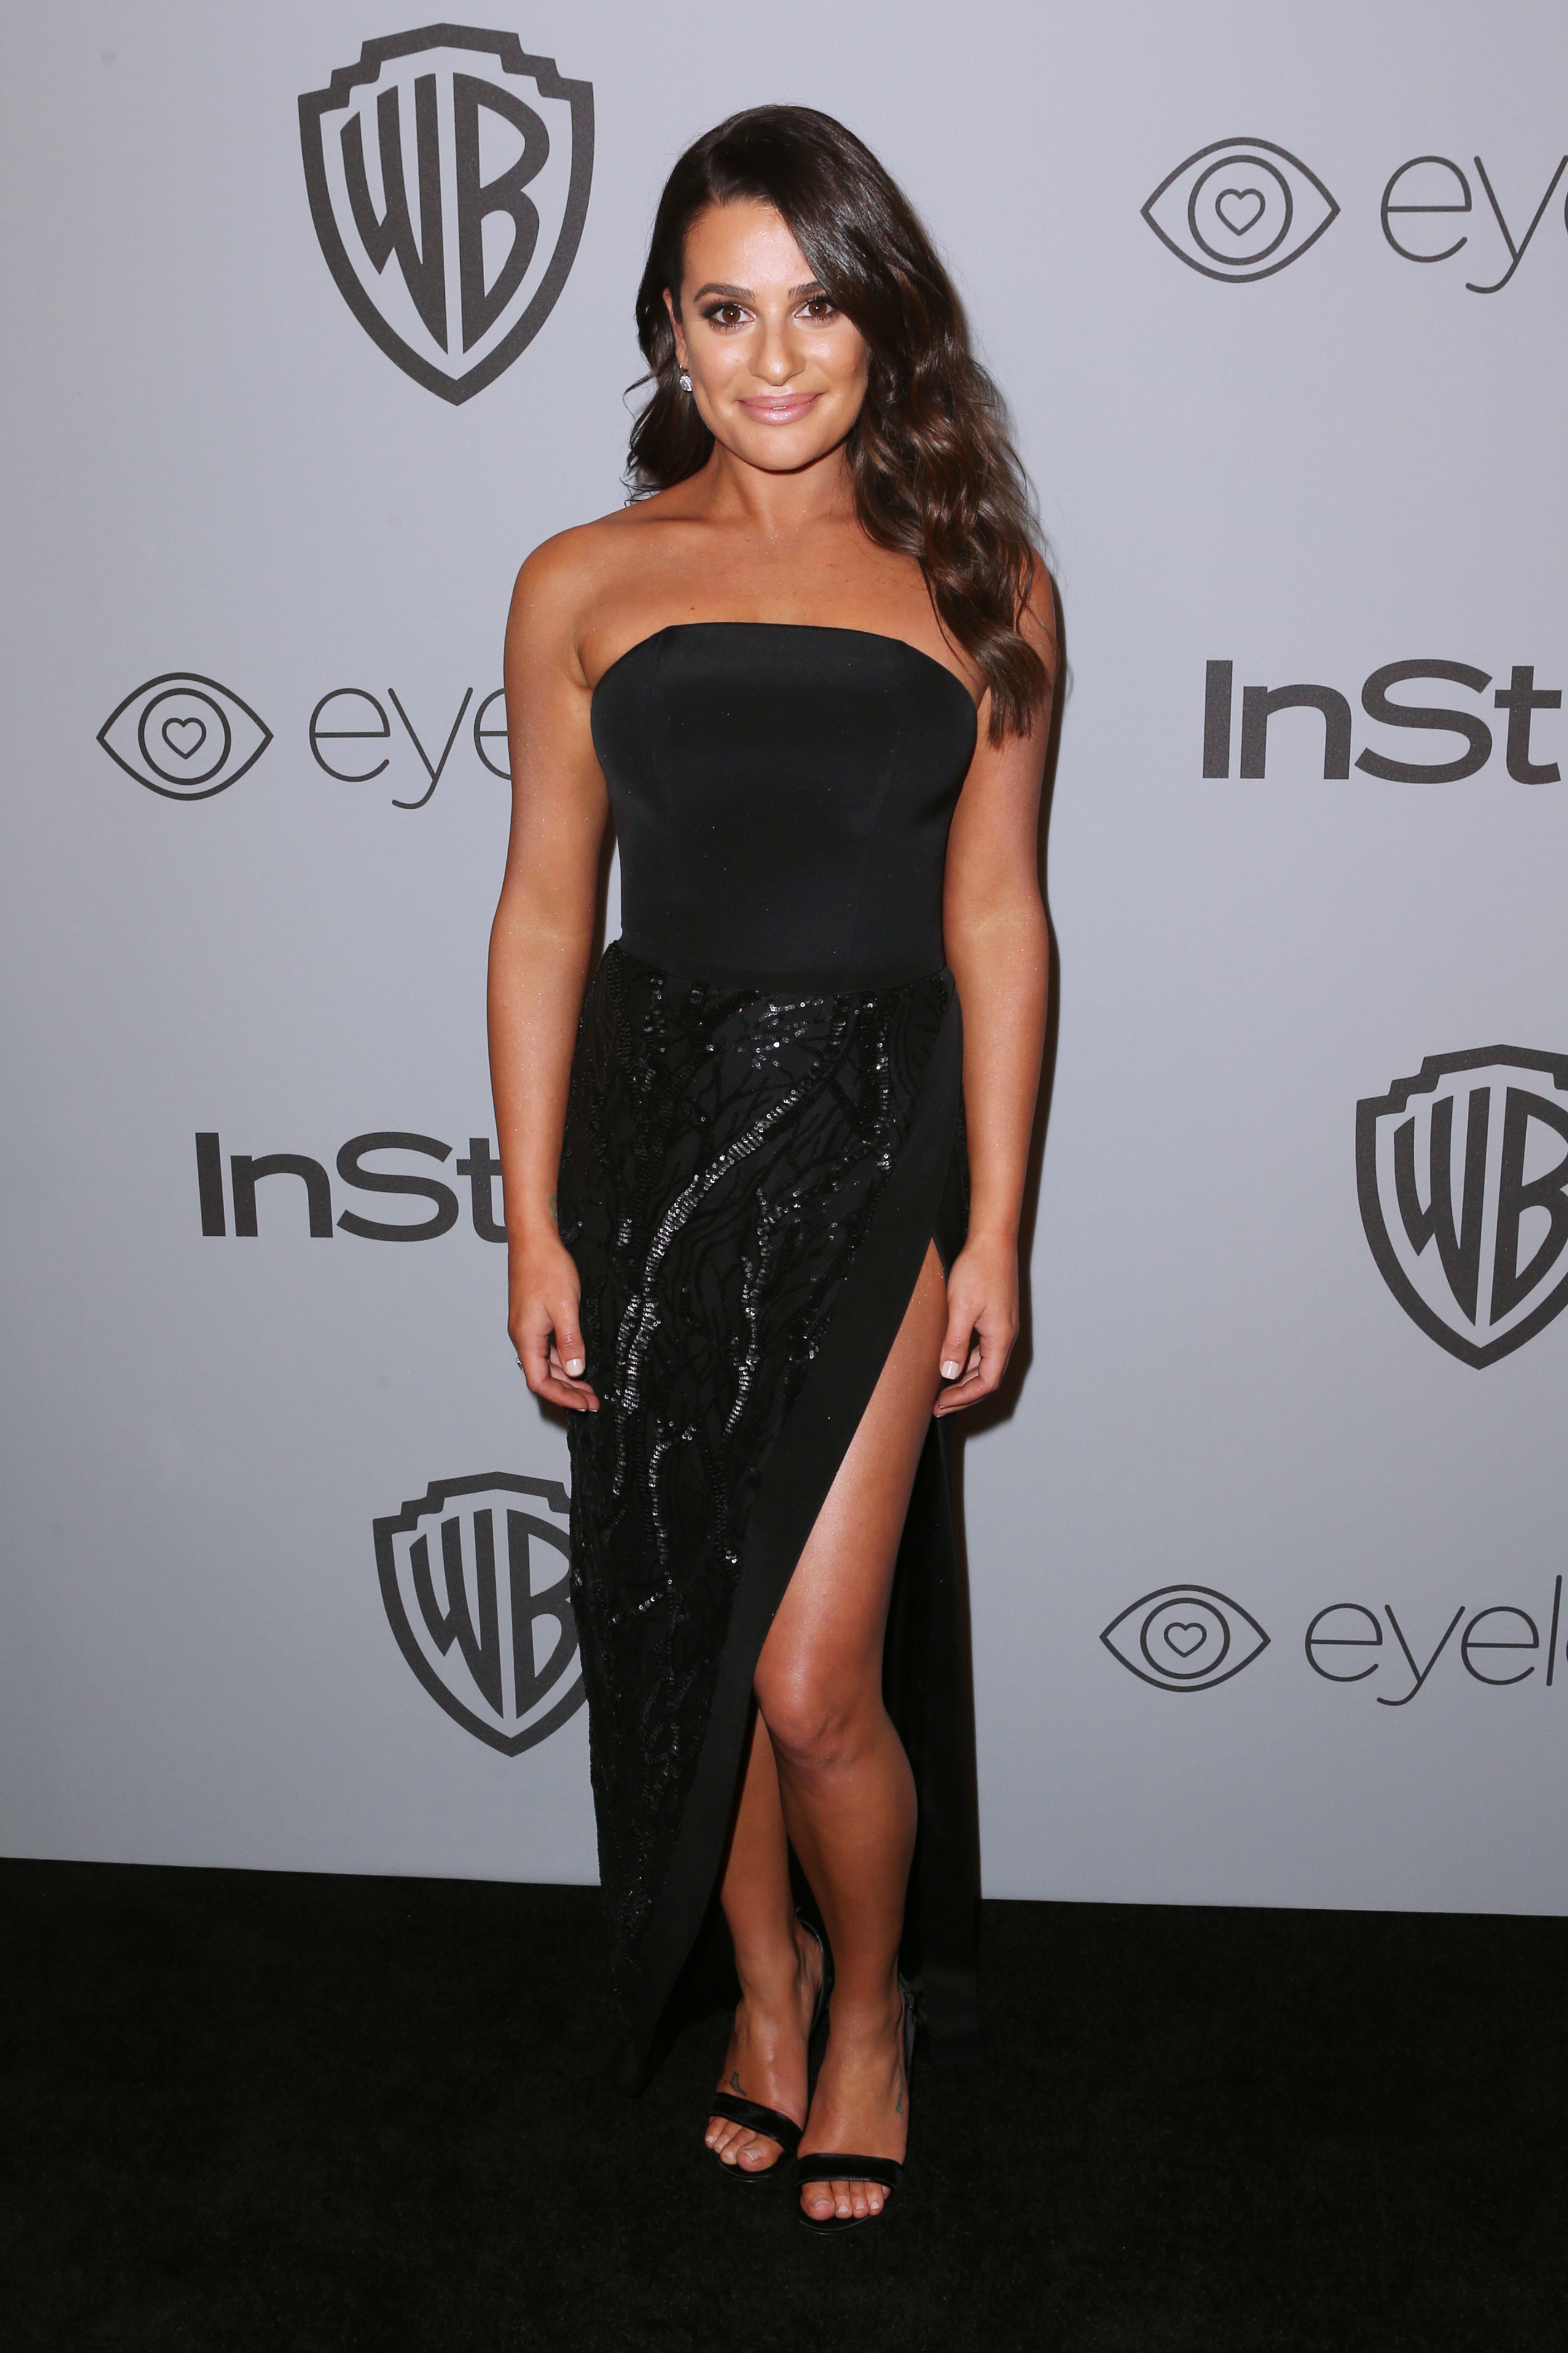 Lea Michele attends the InStyle and Warner Bros. Golden Globes afterparty in Beverly Hills on Jan. 7, 2018.